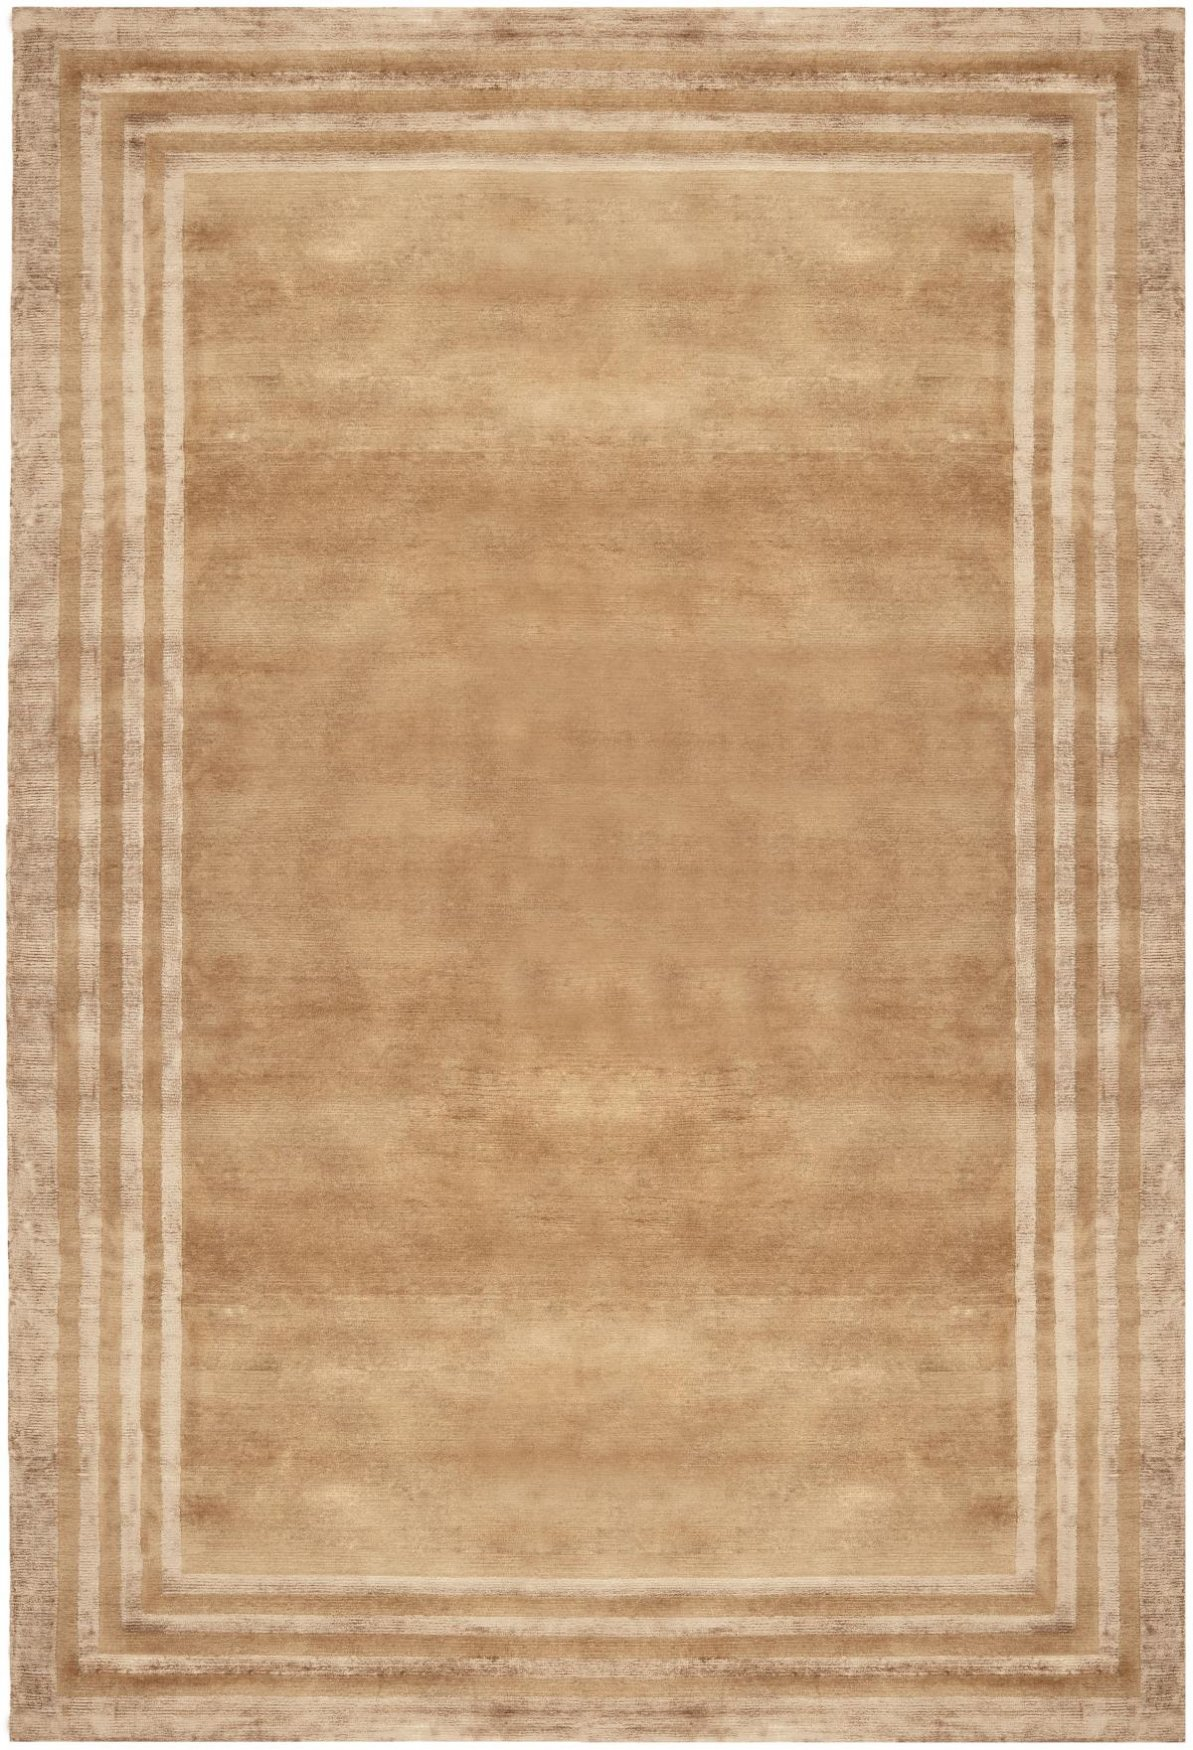 Ralph Lauren Ellington Border Rugs